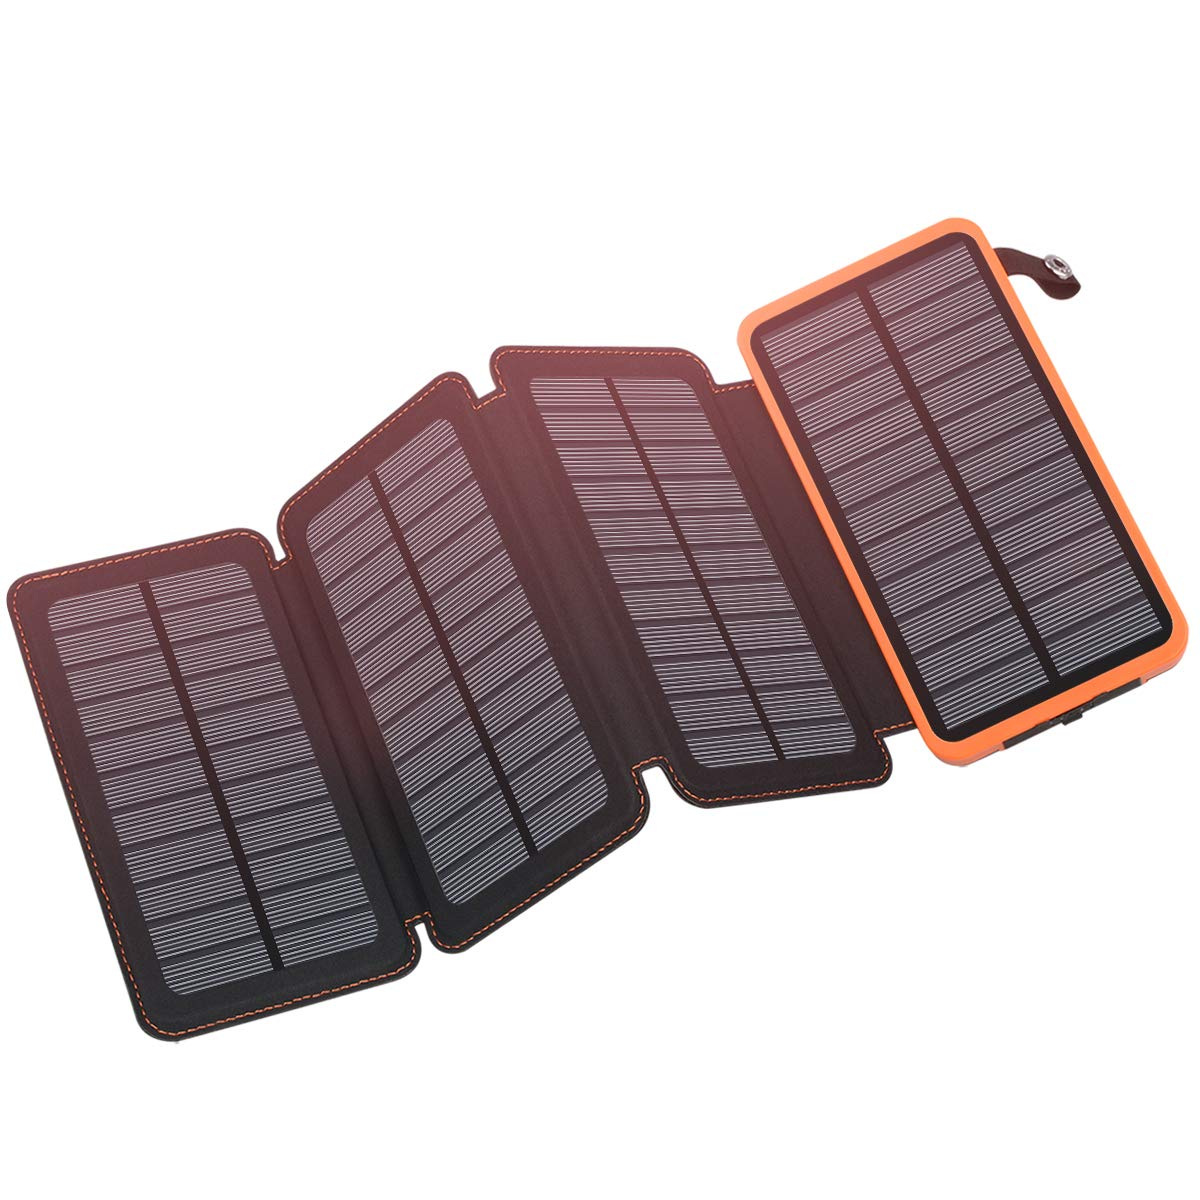 ویکالا · خرید  اصل اورجینال · خرید از آمازون · Solar Charger 25000mAh, FEELLE Solar Power Bank with 4 Solar Panels Outdoor Waterproof Solar Phone Chargers with Dual 2.1A USB Ports for Smart Phone, Tablets, Camera, ect. wekala · ویکالا